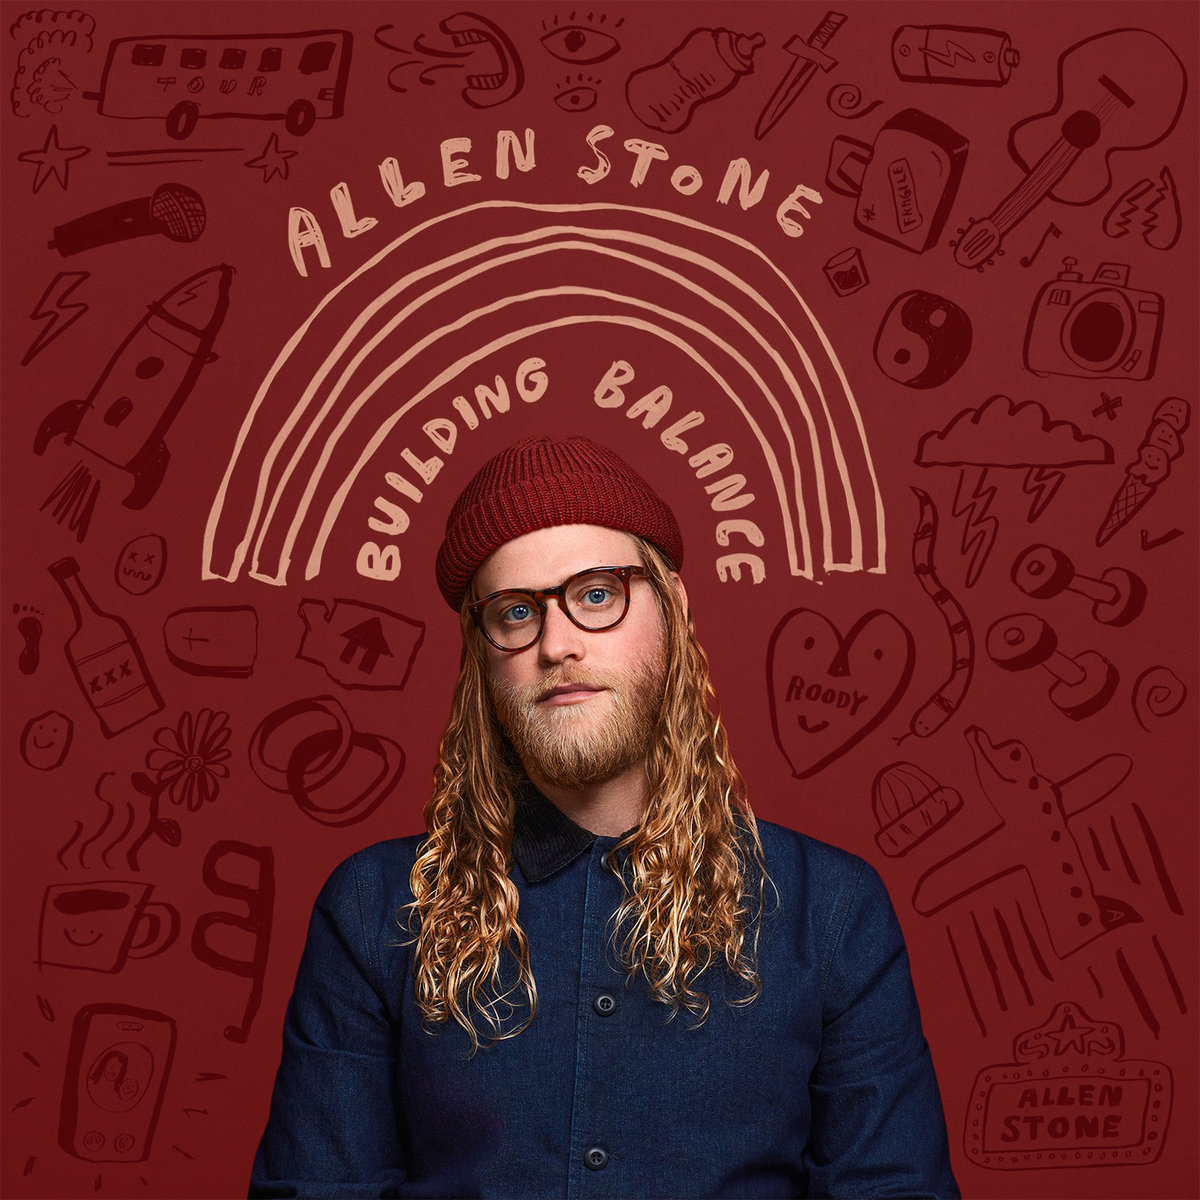 Album-Tipp: Allen Stone - Building Balance • 3 Videos + full Album-Stream